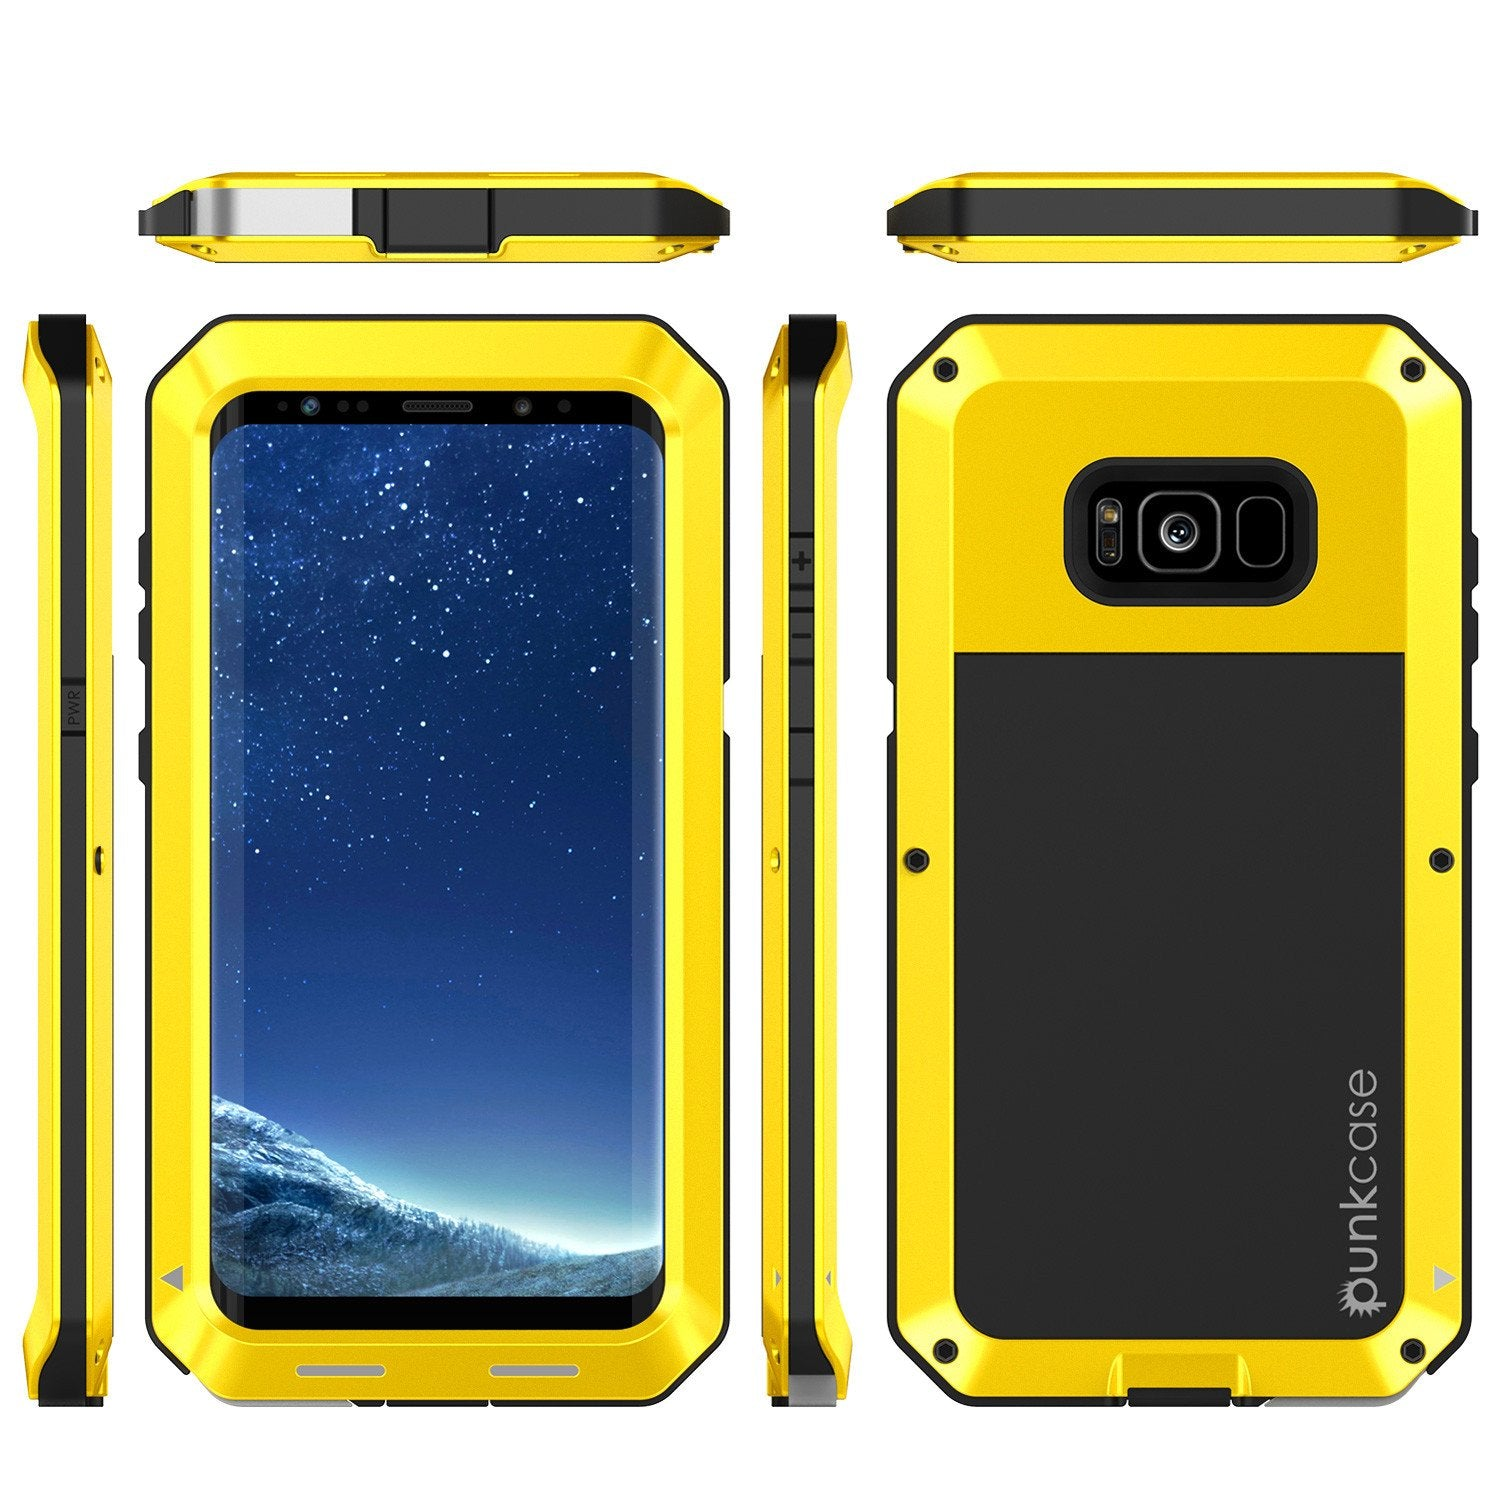 Galaxy S8 Metal Case, Heavy Duty Military Grade Rugged Armor Cover [shock proof] W/ Prime Drop Protection [NEON]